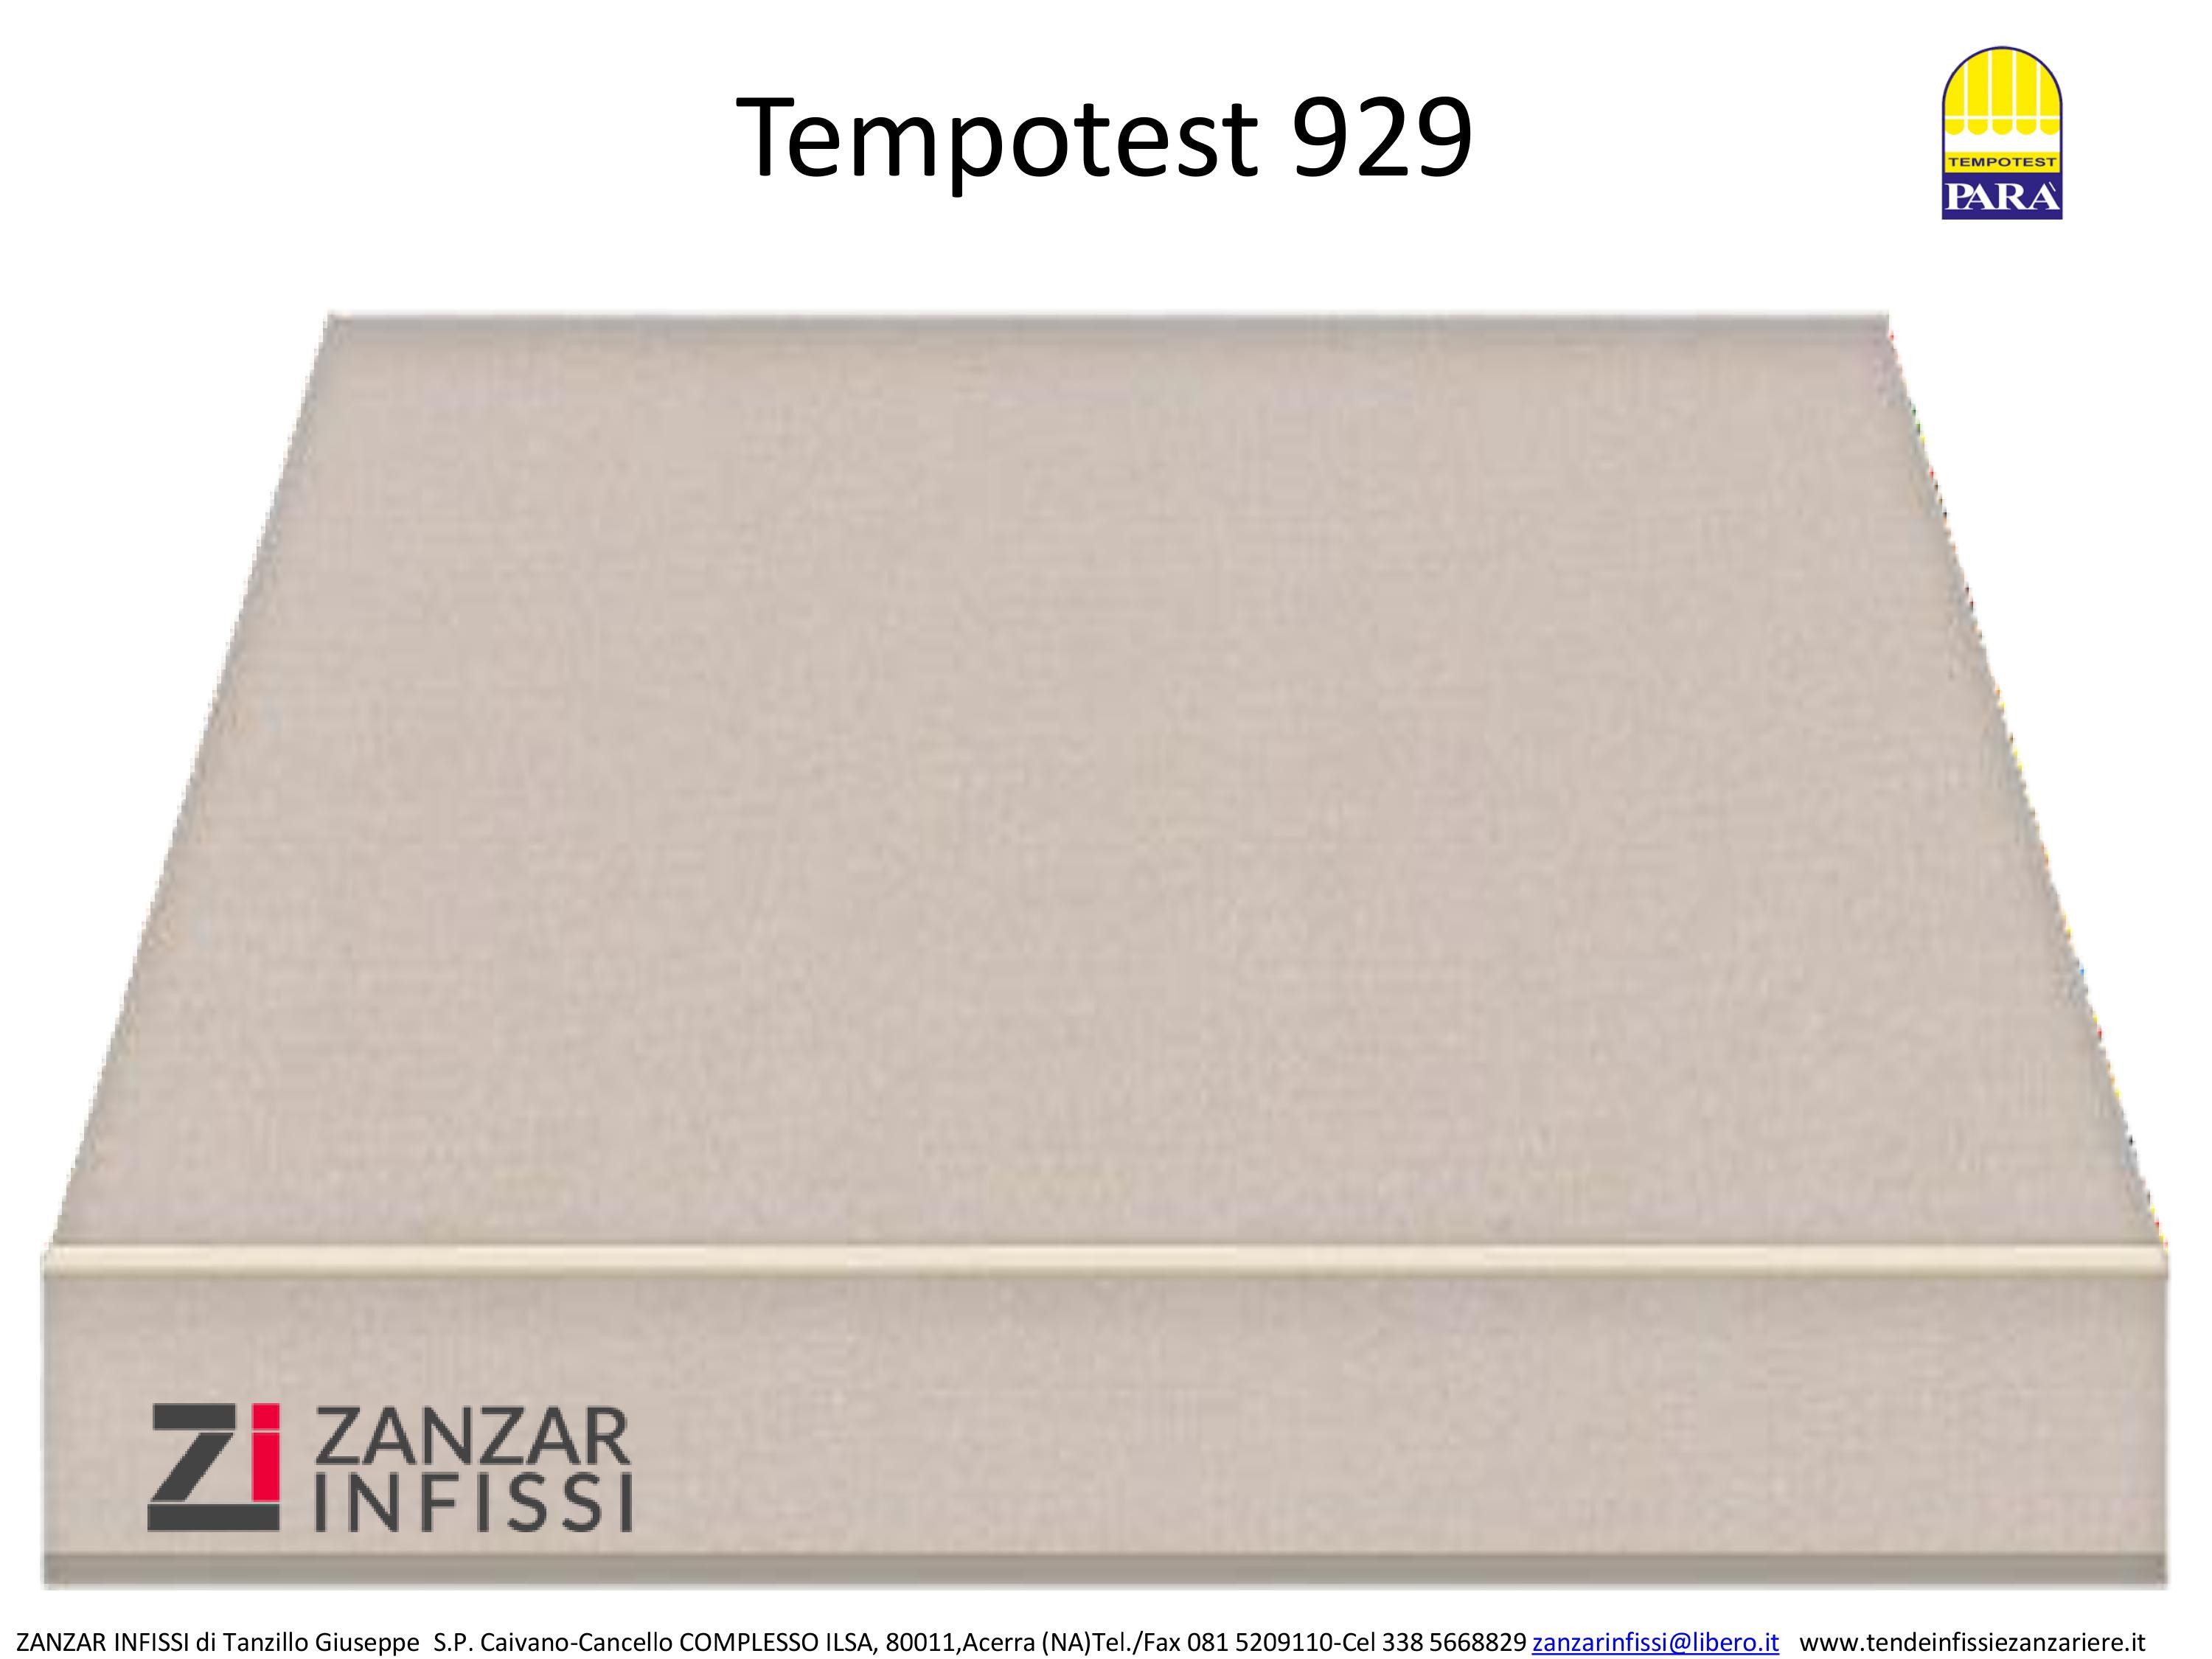 Tempotest 929